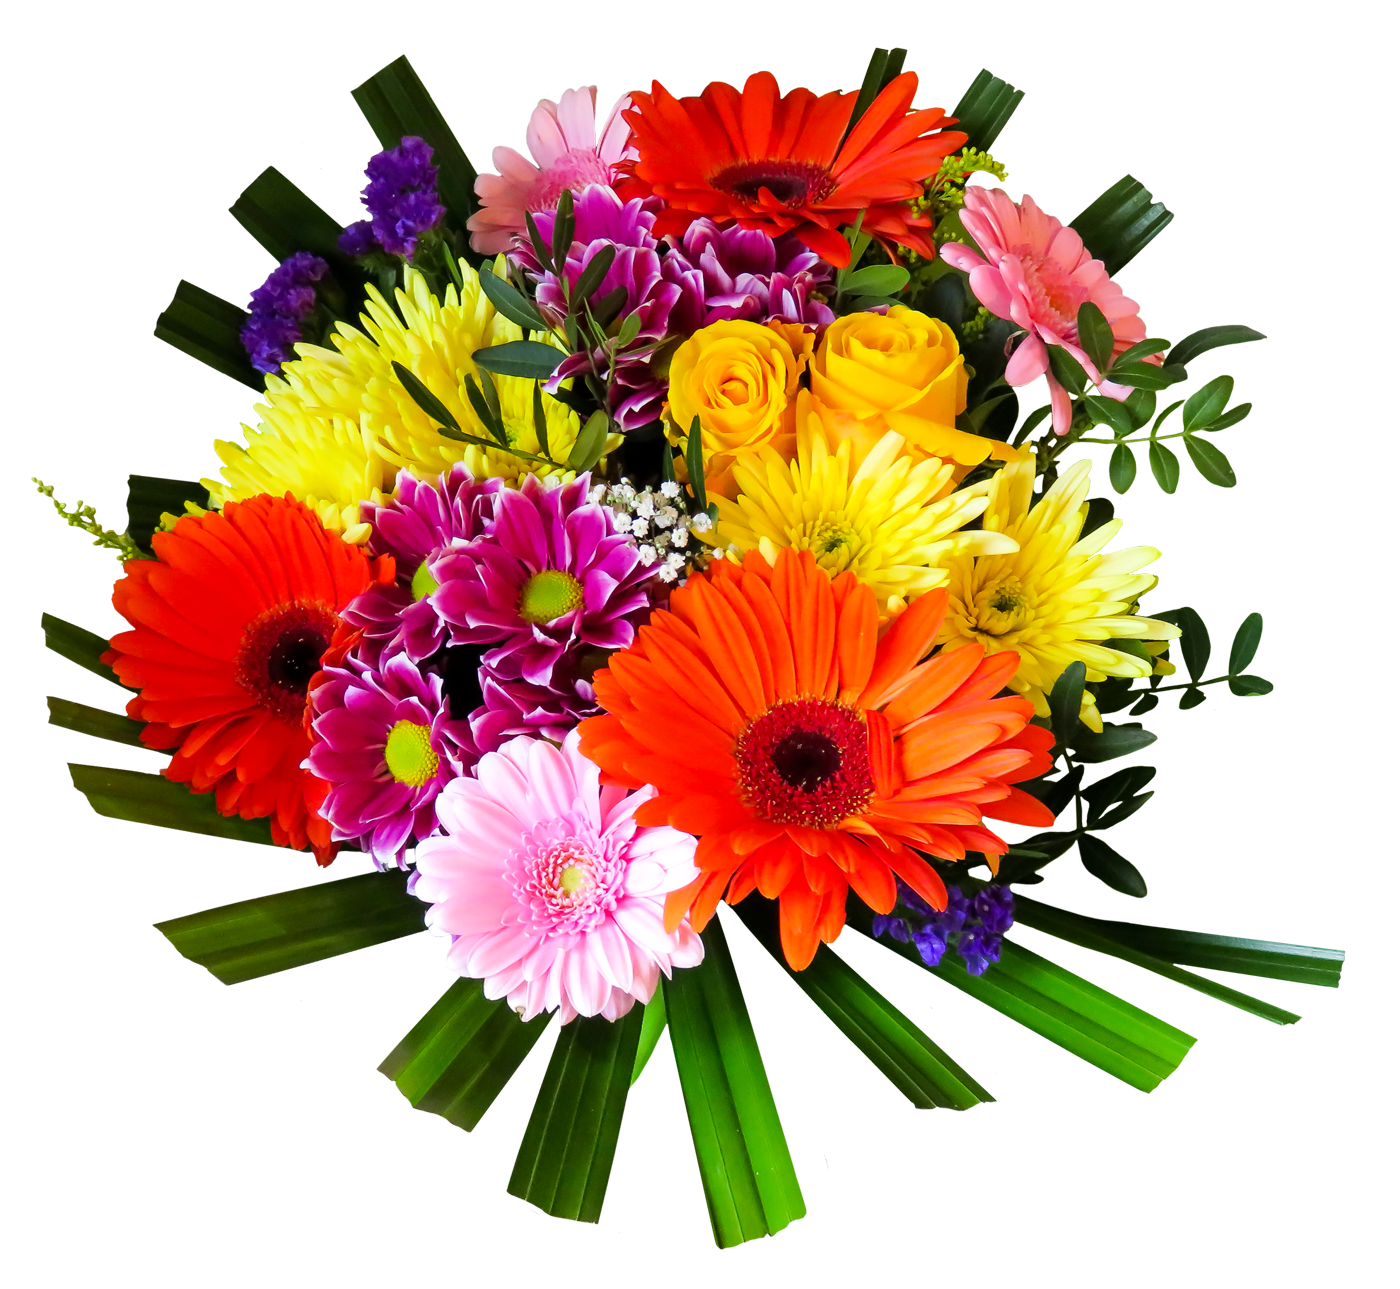 Flower Bouquet PNG Transparent Image - Flower HD PNG